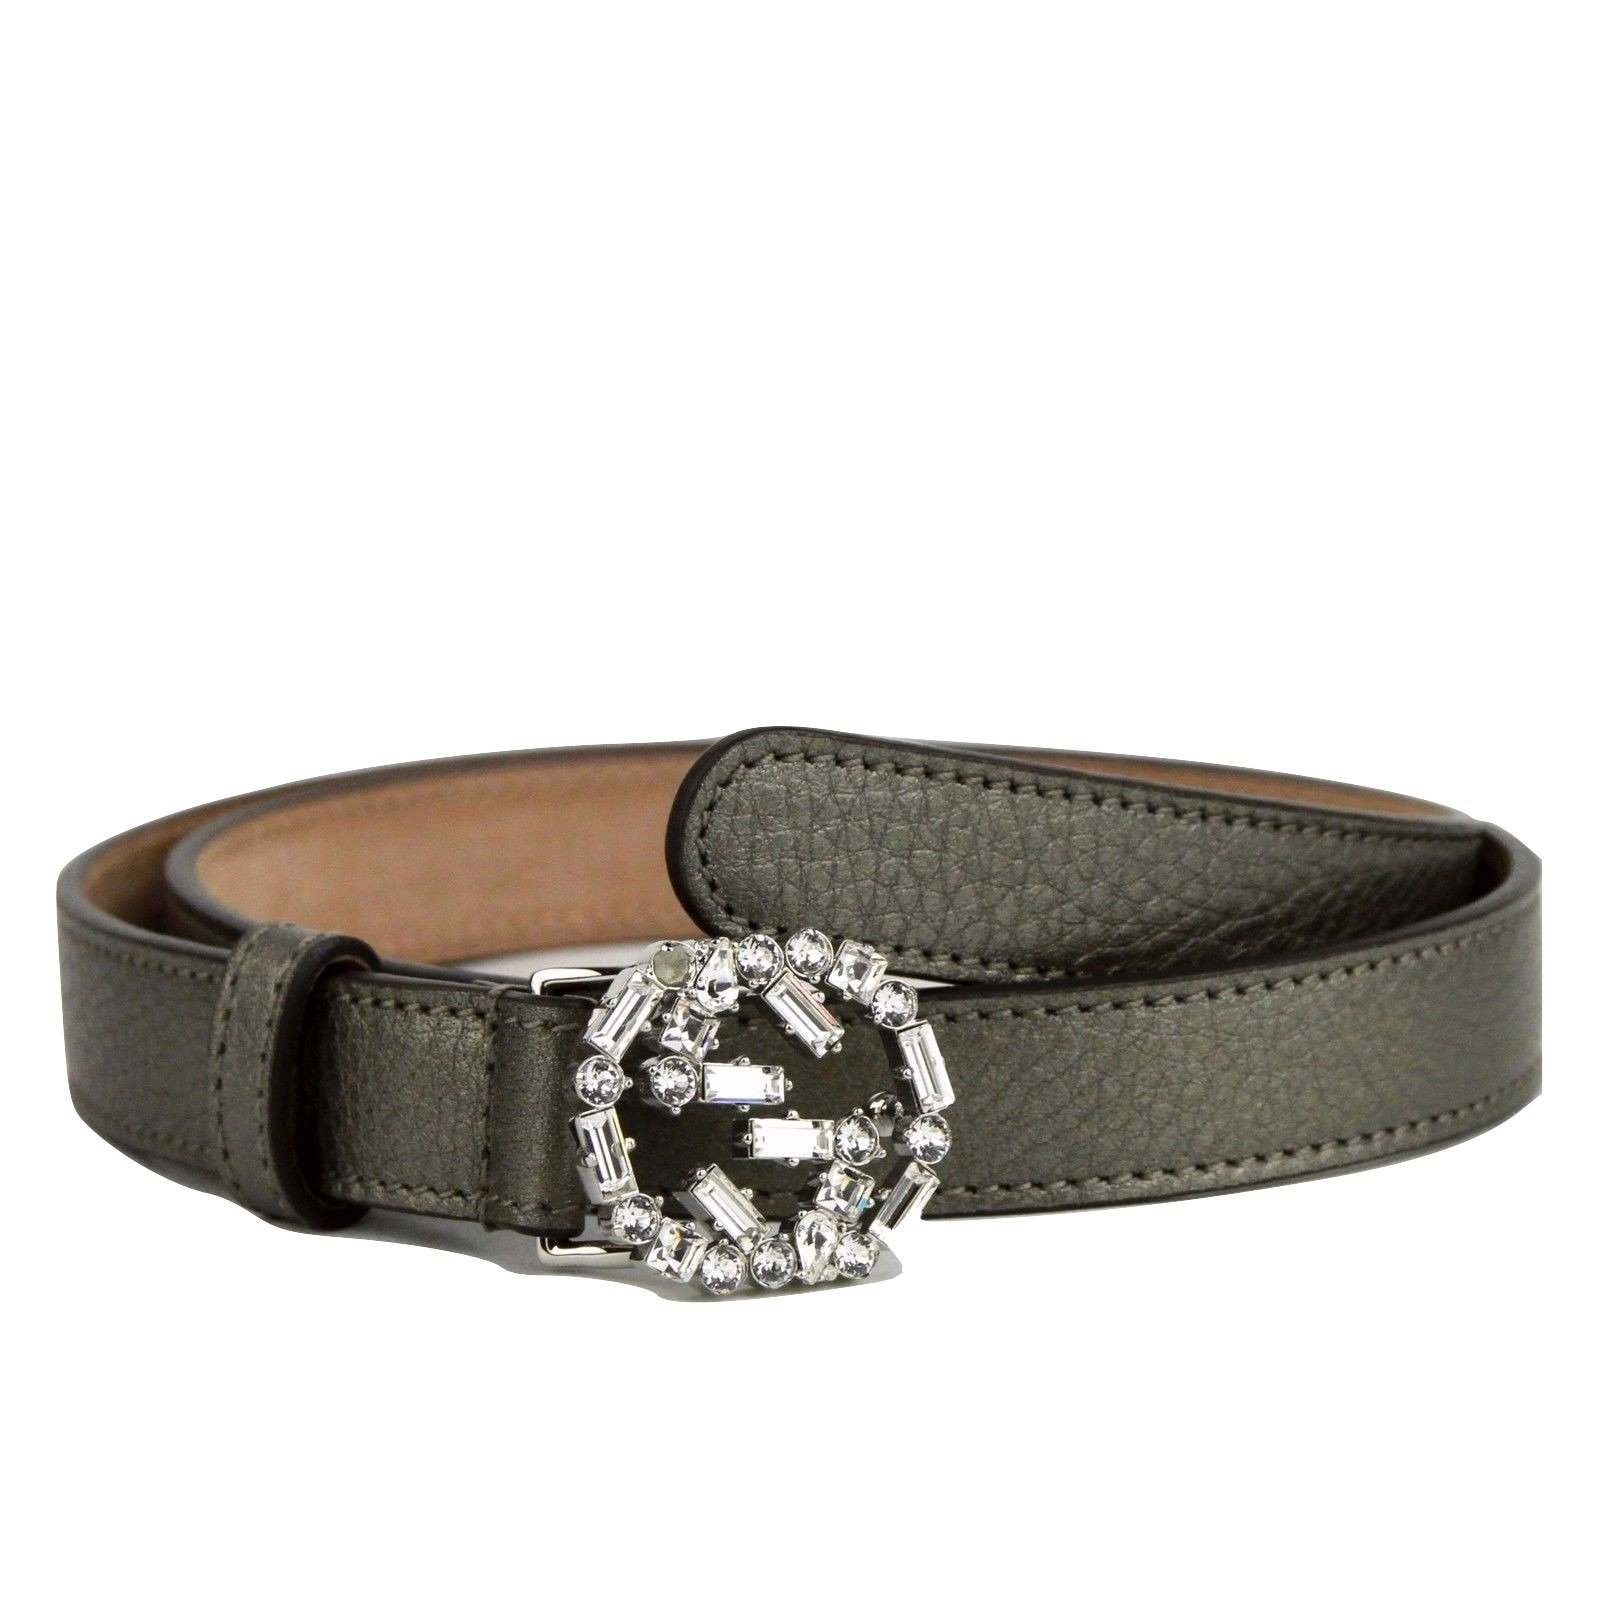 Gucci Women's Interlocking Crystal G Leather Skinny Belt 354380 (85 / 34, Metallic Gray)